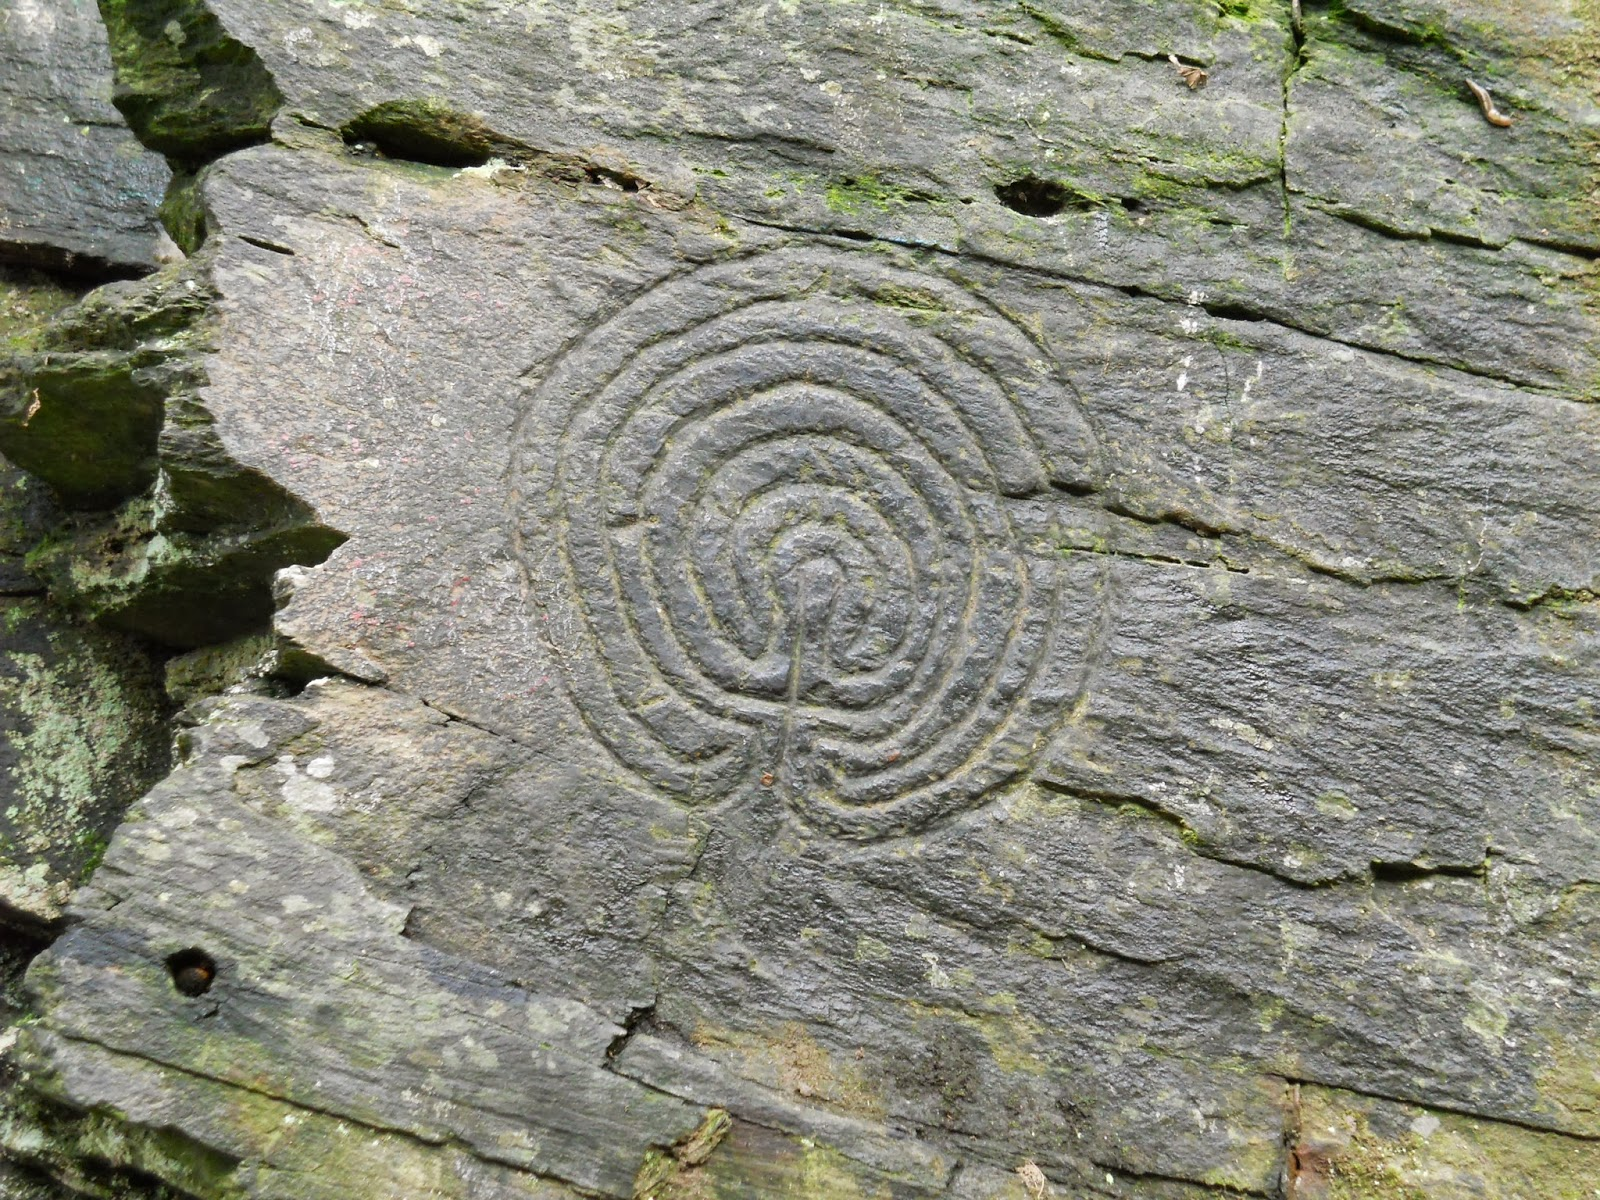 Some ancient stone carvings and structures in cornwall